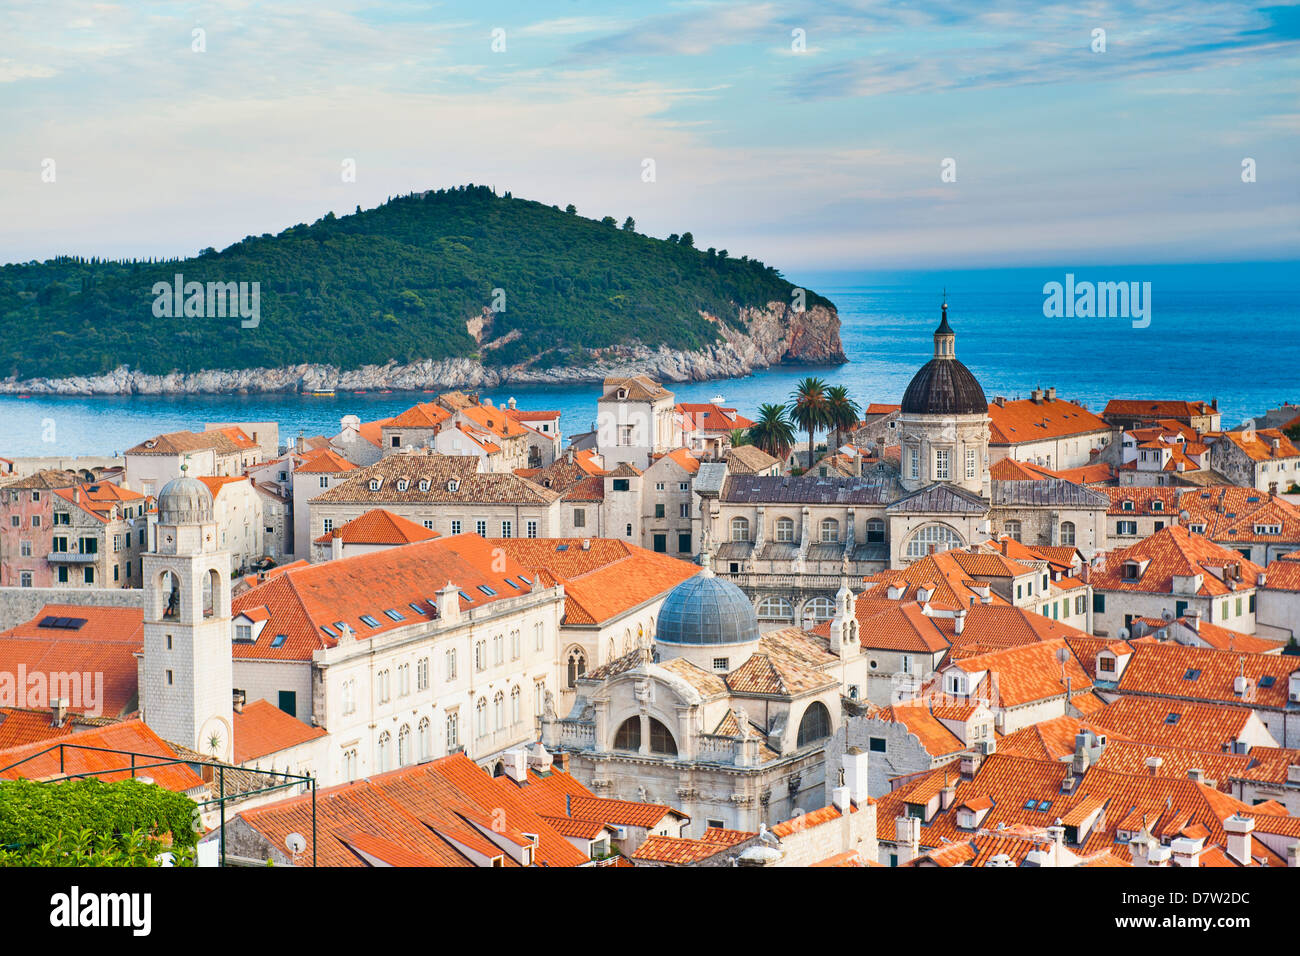 Dubrovnik Cathedral and Lokrum Island, Old Town, UNESCO World Heritage Site, Dubrovnik, Dalmatian Coast, Adriatic, - Stock Image